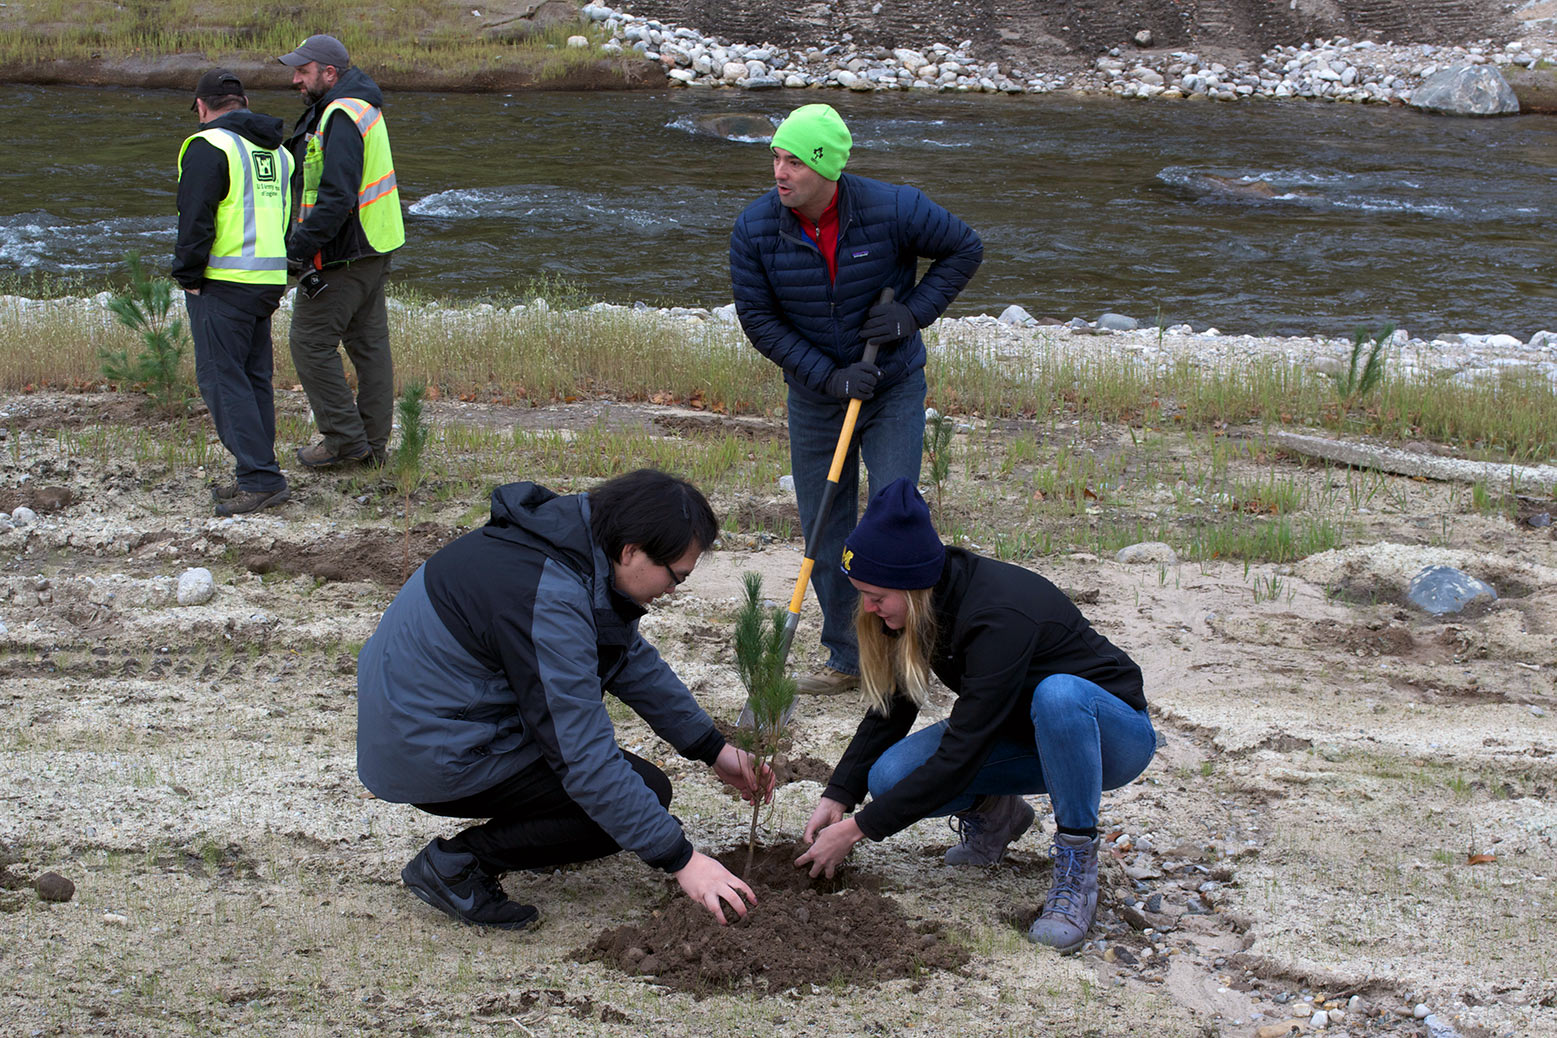 Three people plant small tree by river